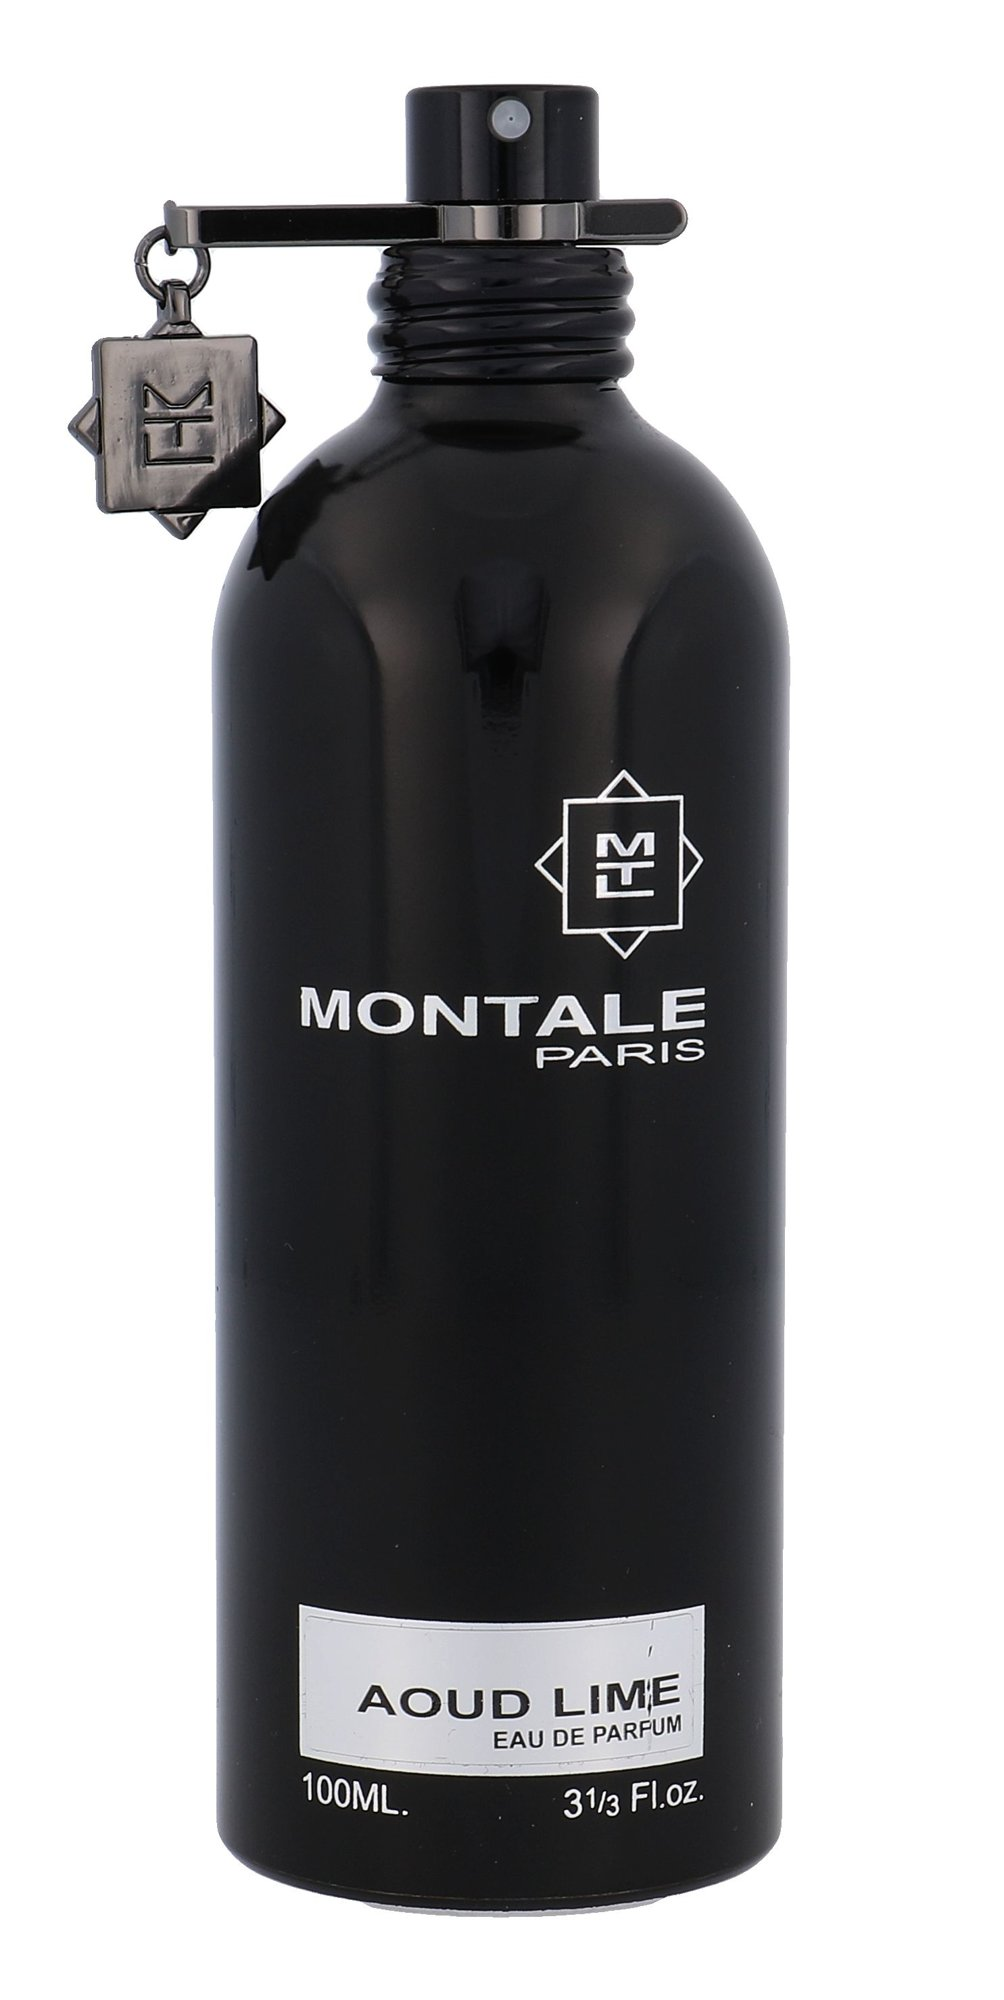 Montale Paris Aoud Lime EDP 100ml